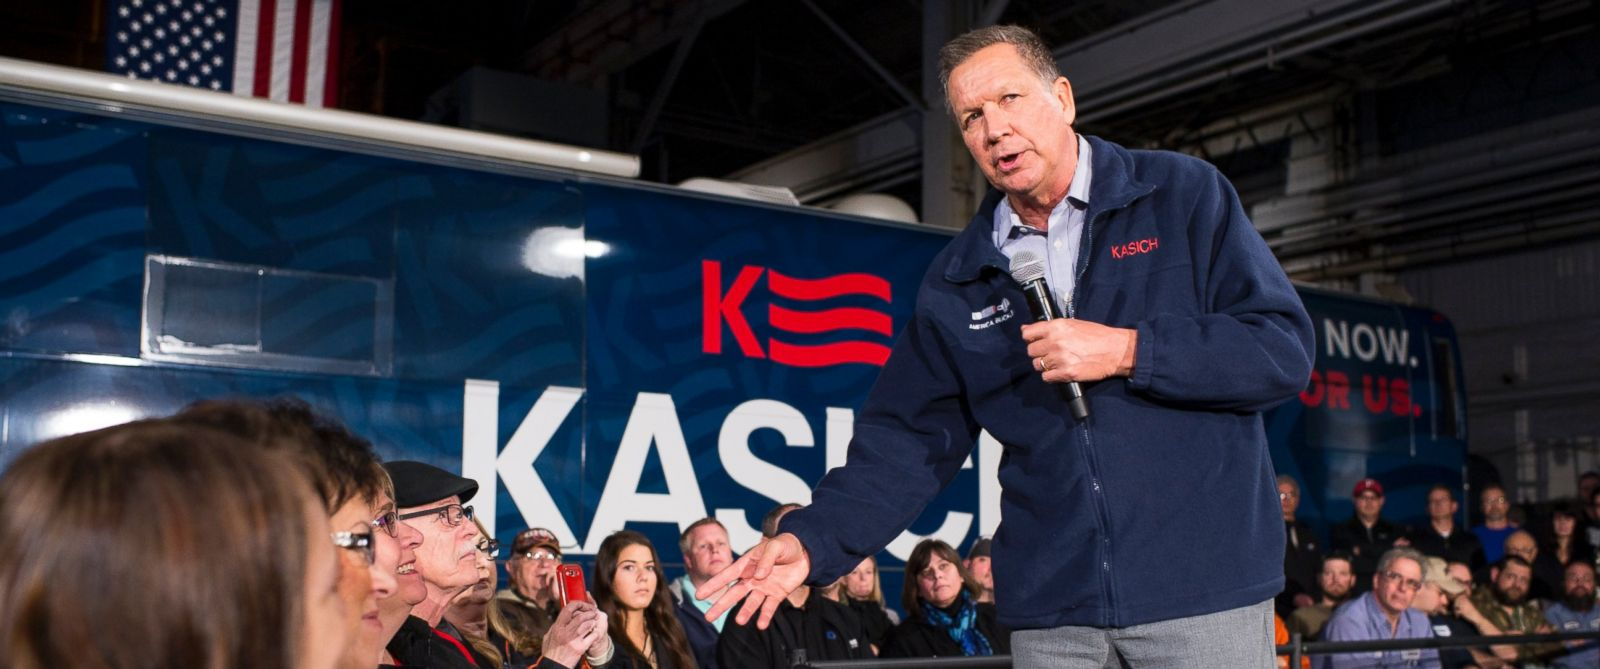 PHOTO: Republican presidential candidate Ohio Gov. John Kasich speaks to supporters at a town hall meeting at Brilex Industries, Inc., March 14, 2016, in Youngstown, Ohio.